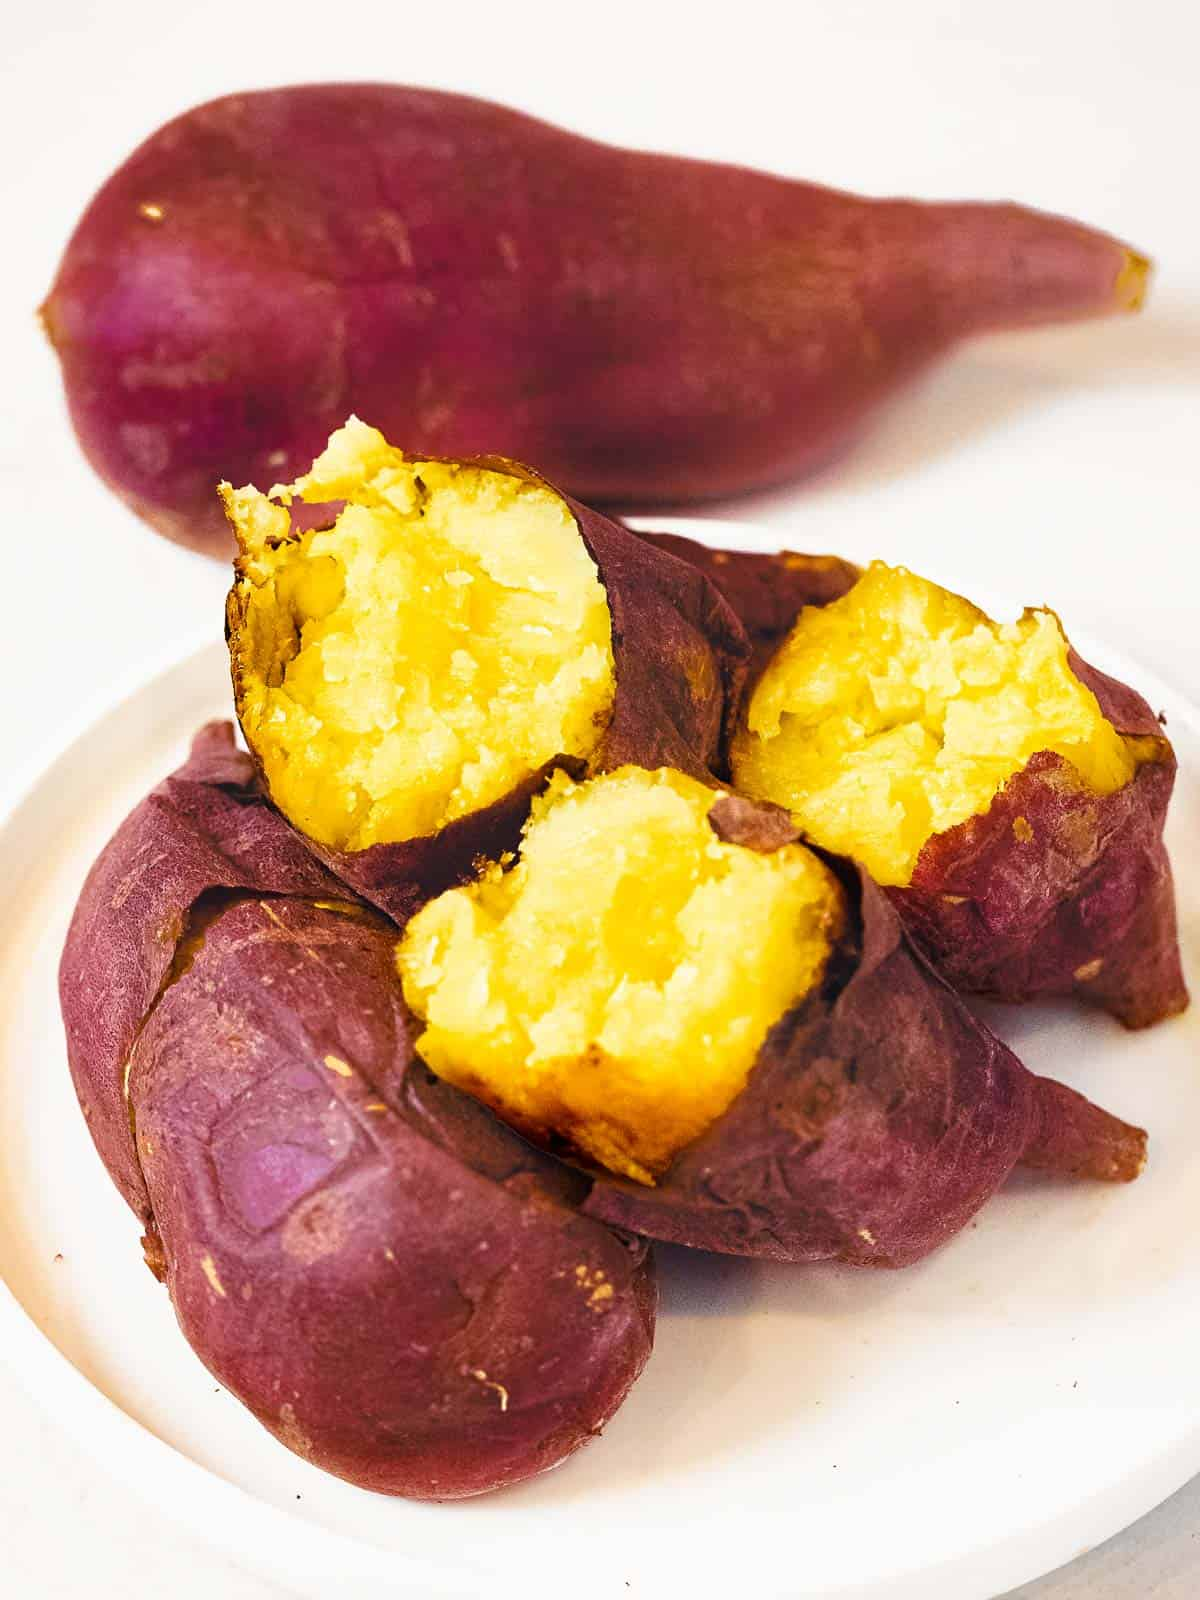 Korean sweet potatoes baked in the oven until soft and fluffy split open to reveal golden yellow flesh with crispy purple skin.